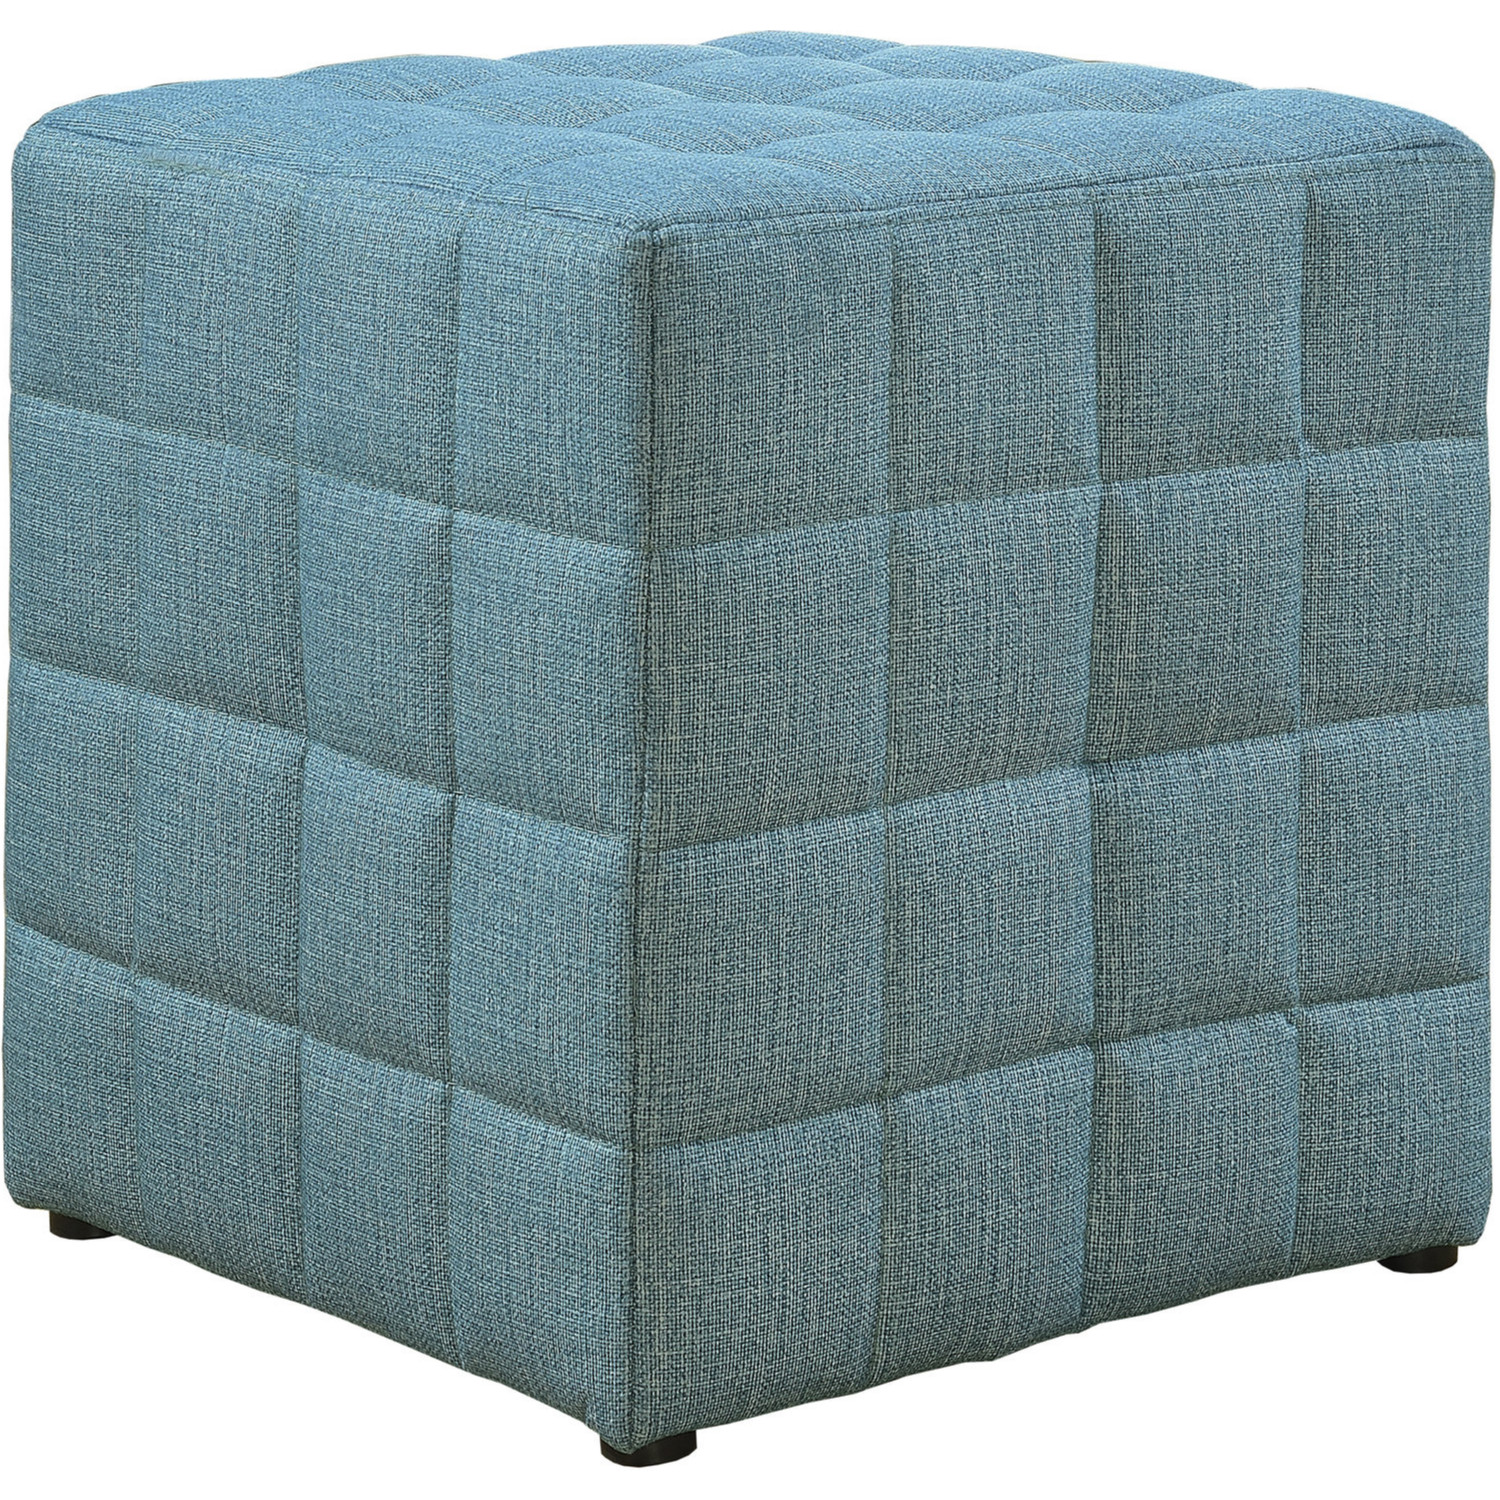 Magnificent Ottoman In Tufted Light Blue Linen Look Fabric By Monarch Specialties Gmtry Best Dining Table And Chair Ideas Images Gmtryco